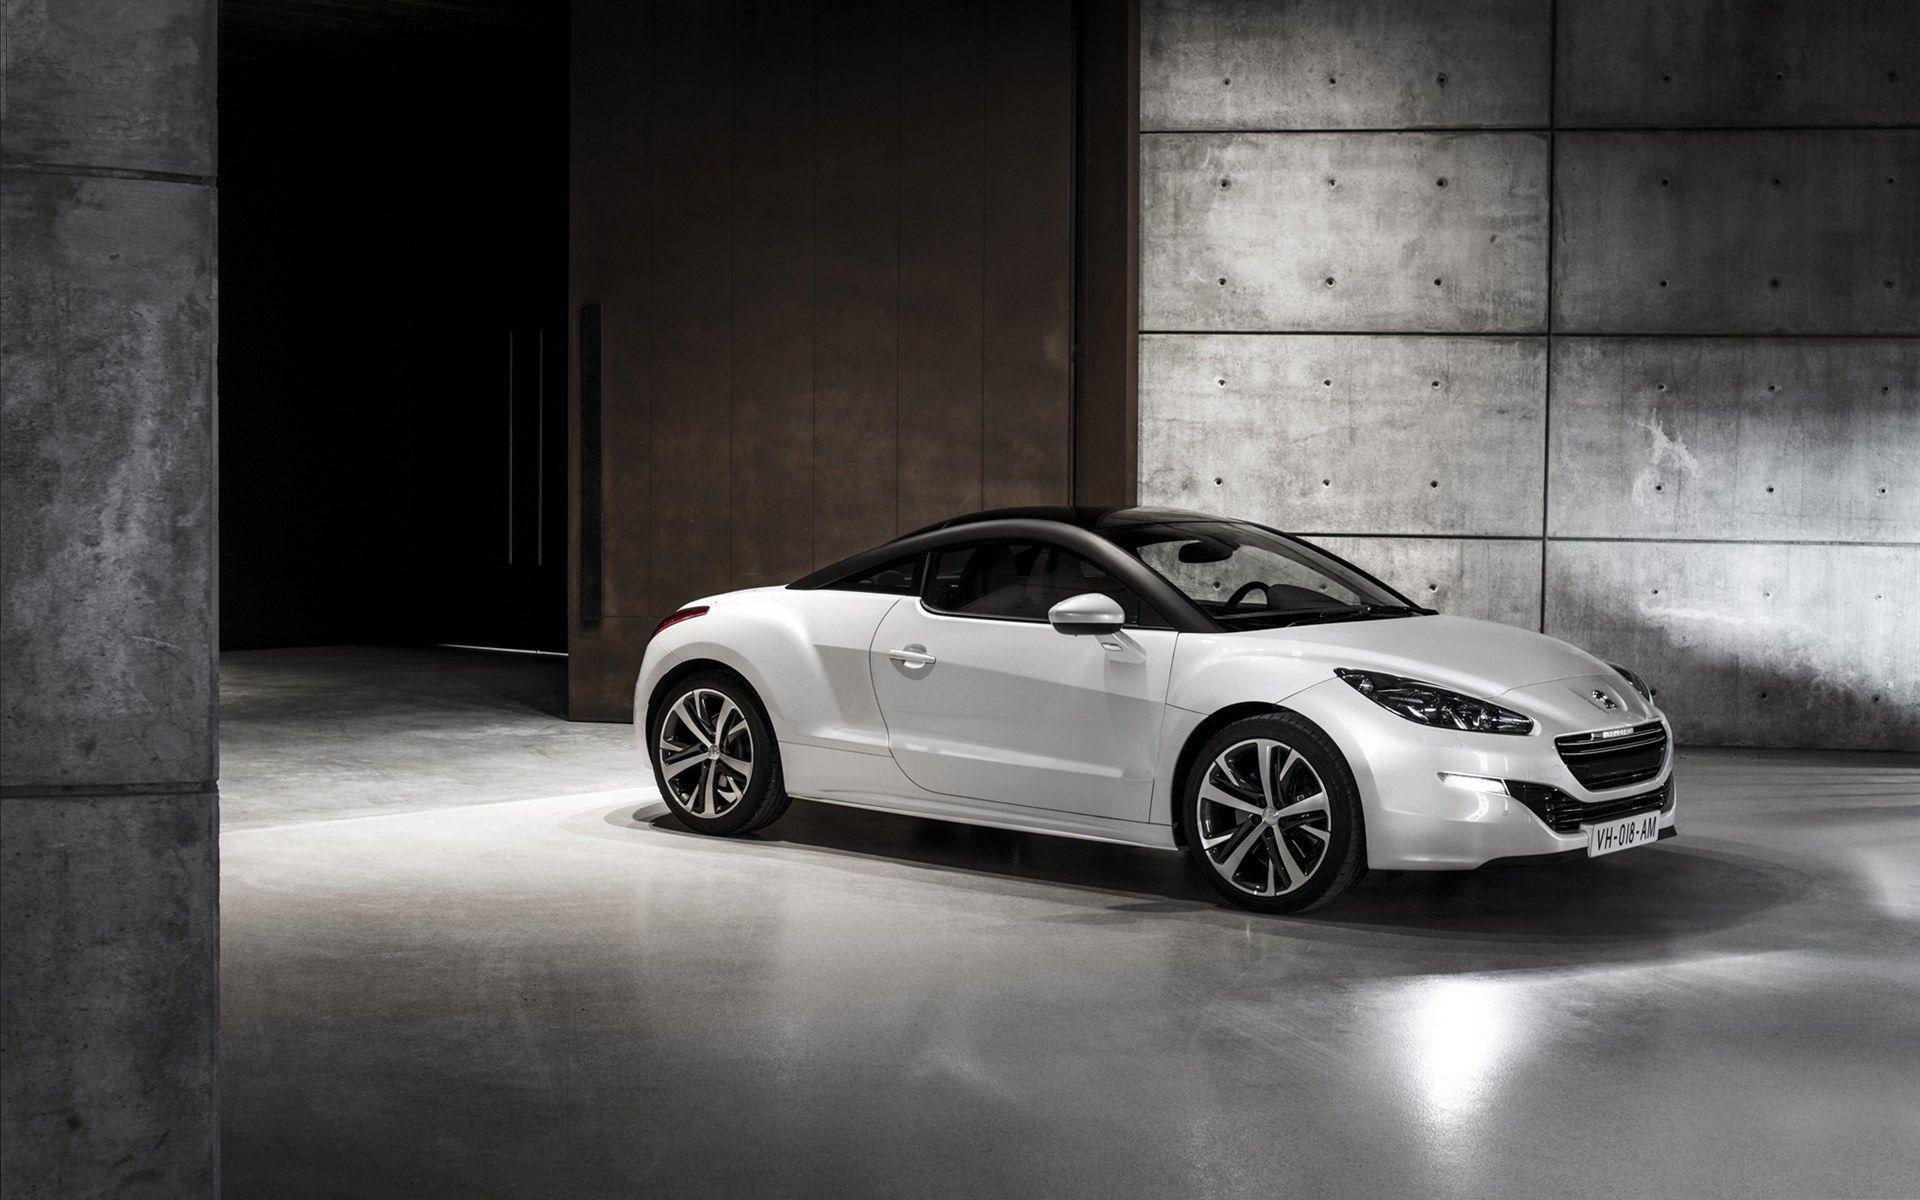 2013 Peugeot RCZ Sports Coupe Wallpaper | HD Car Wallpapers